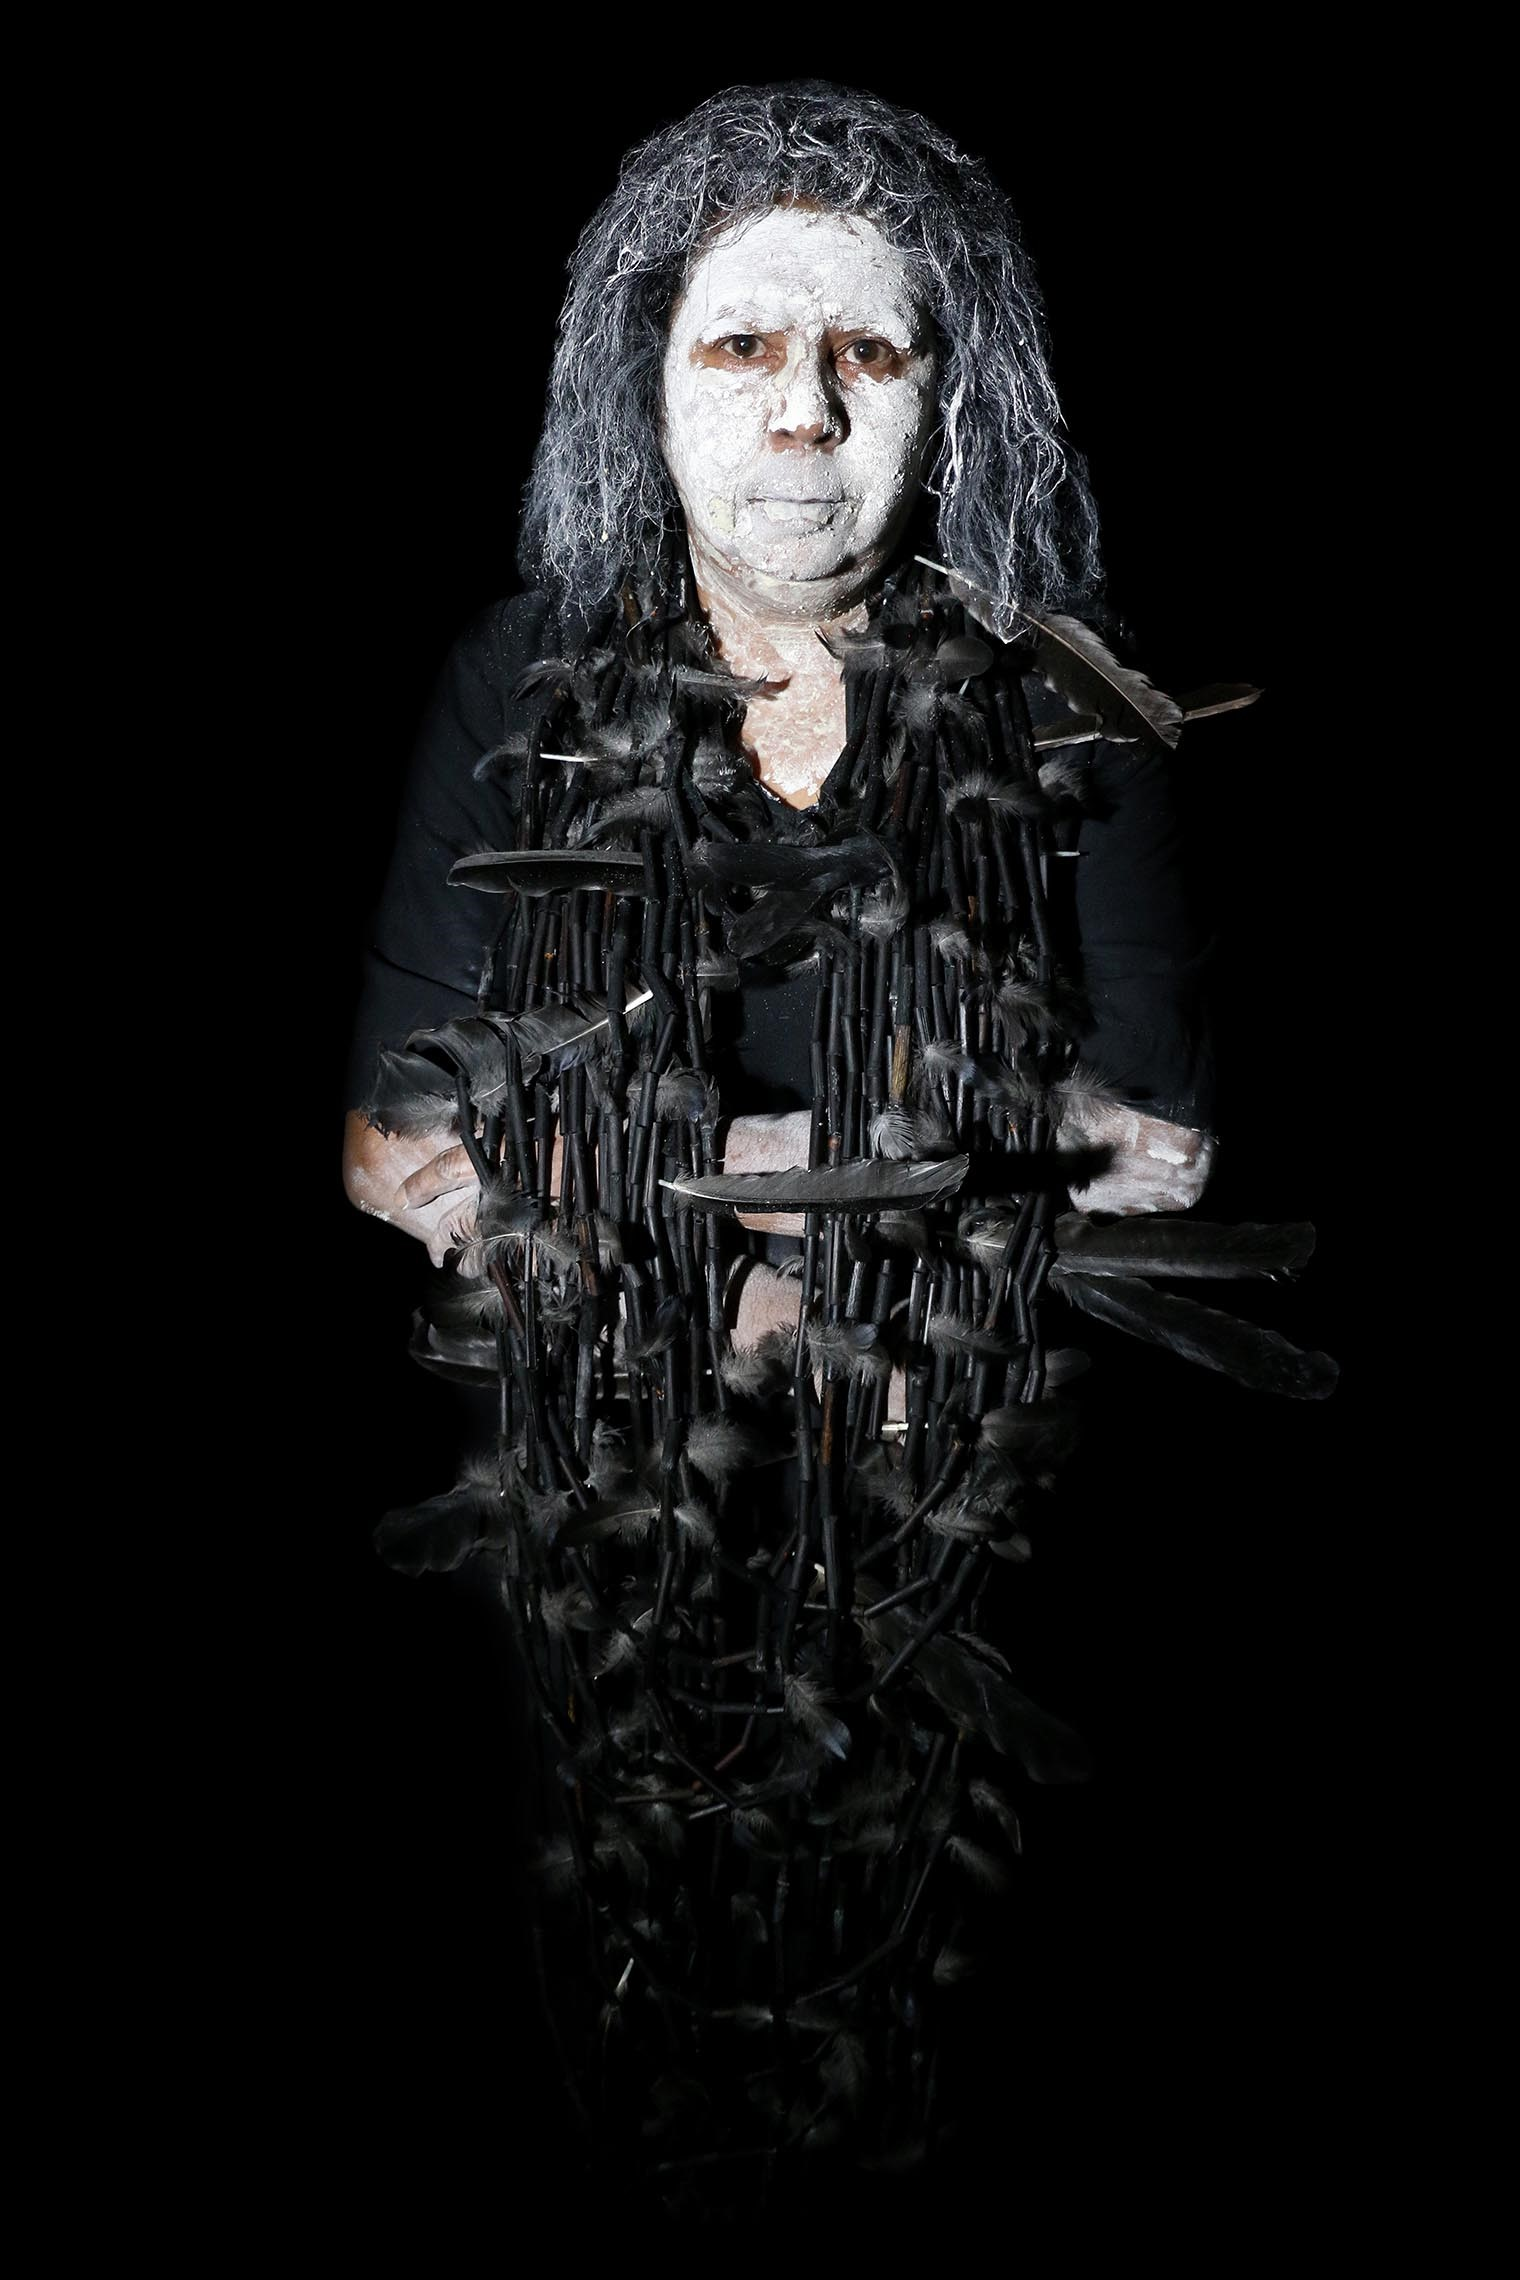 Maree Clarke,  Self Portrait with Mourning Necklace,   2017, Digital image on dibond, Courtesy of the artist and Vivien Anderson Gallery, Melbourne.